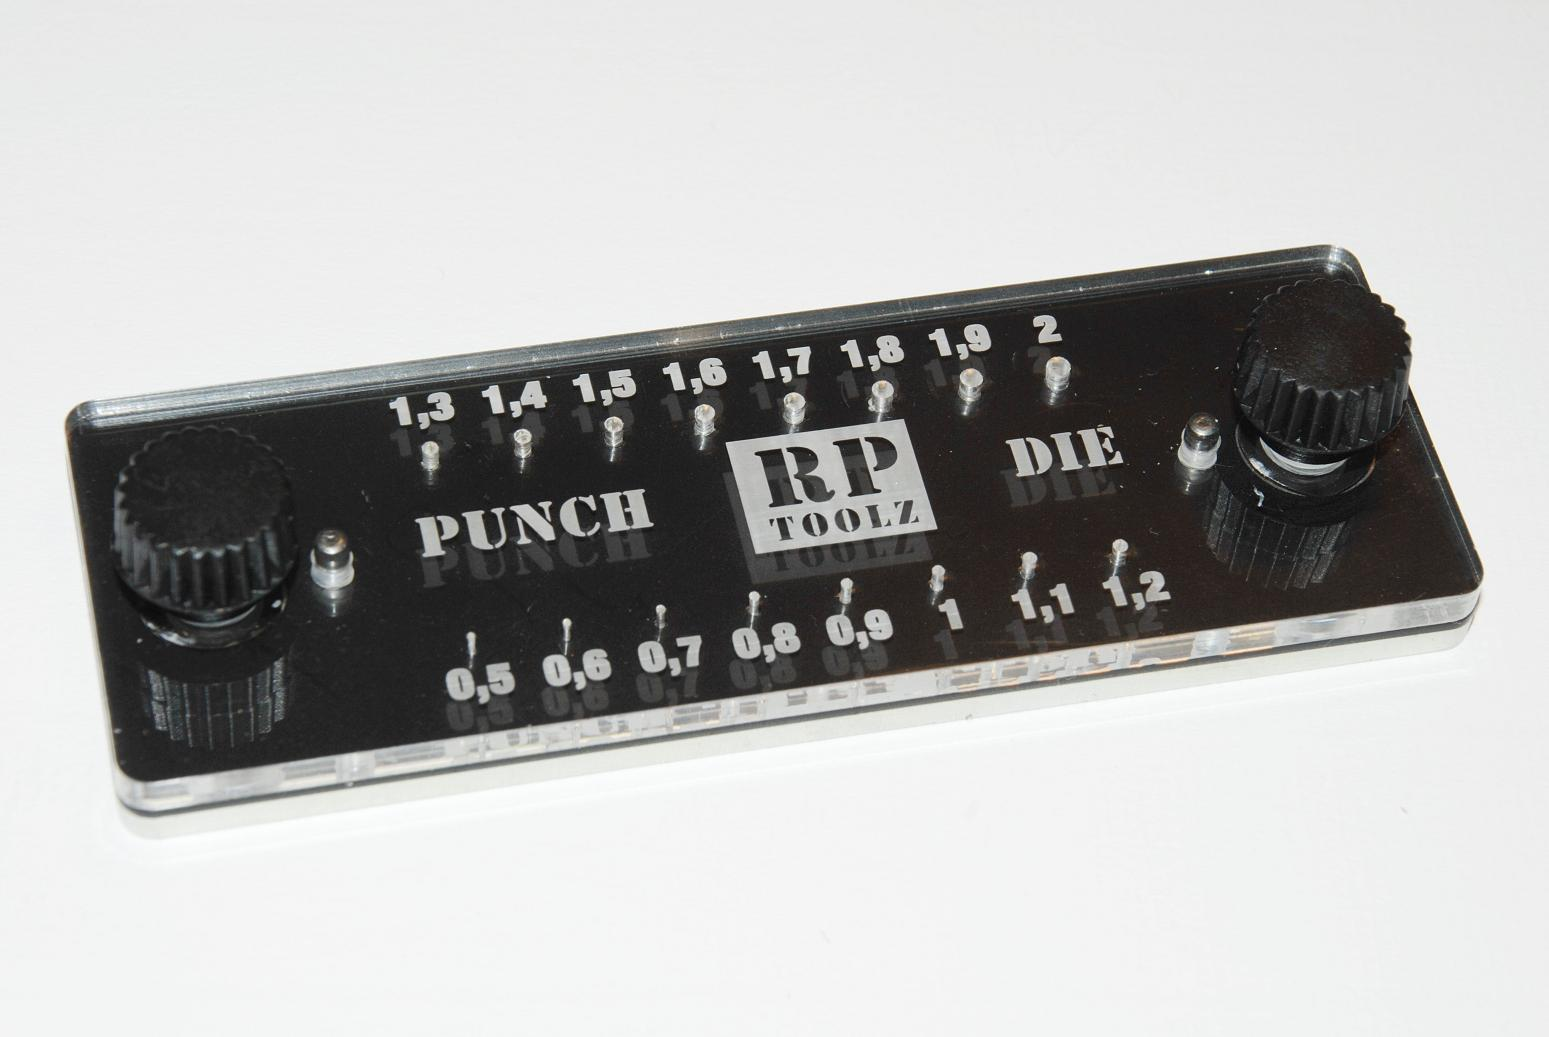 RP TOOLZ, Punch & Die set (0,5-2mm), Photo-Etched Bender Tool, Roller Tool